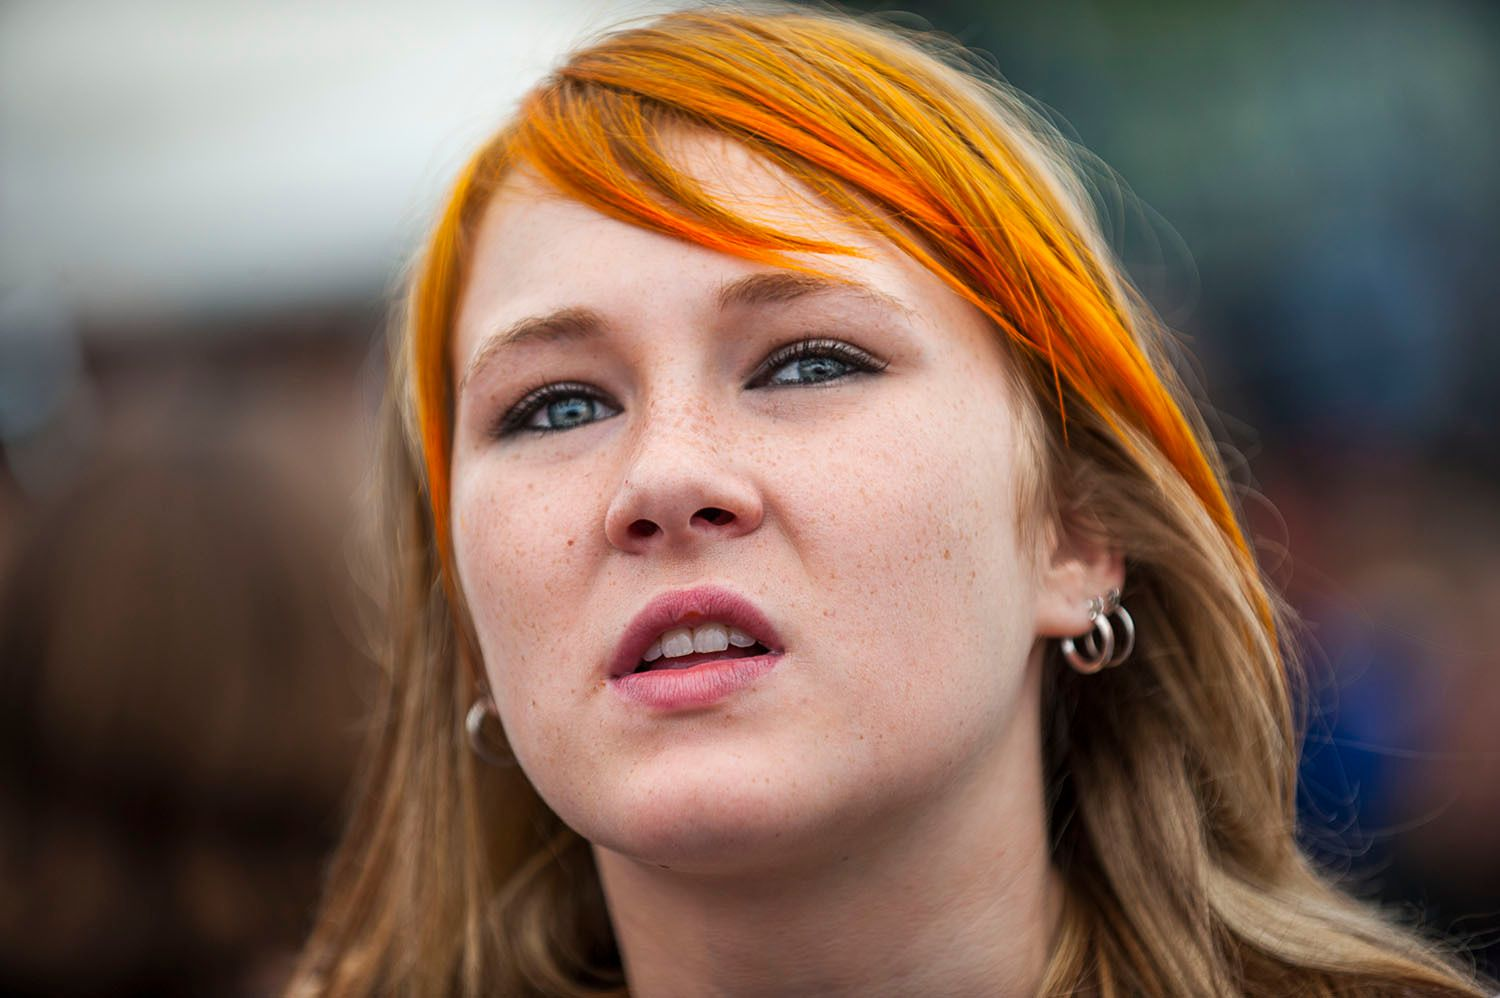 Girl with the orange hair